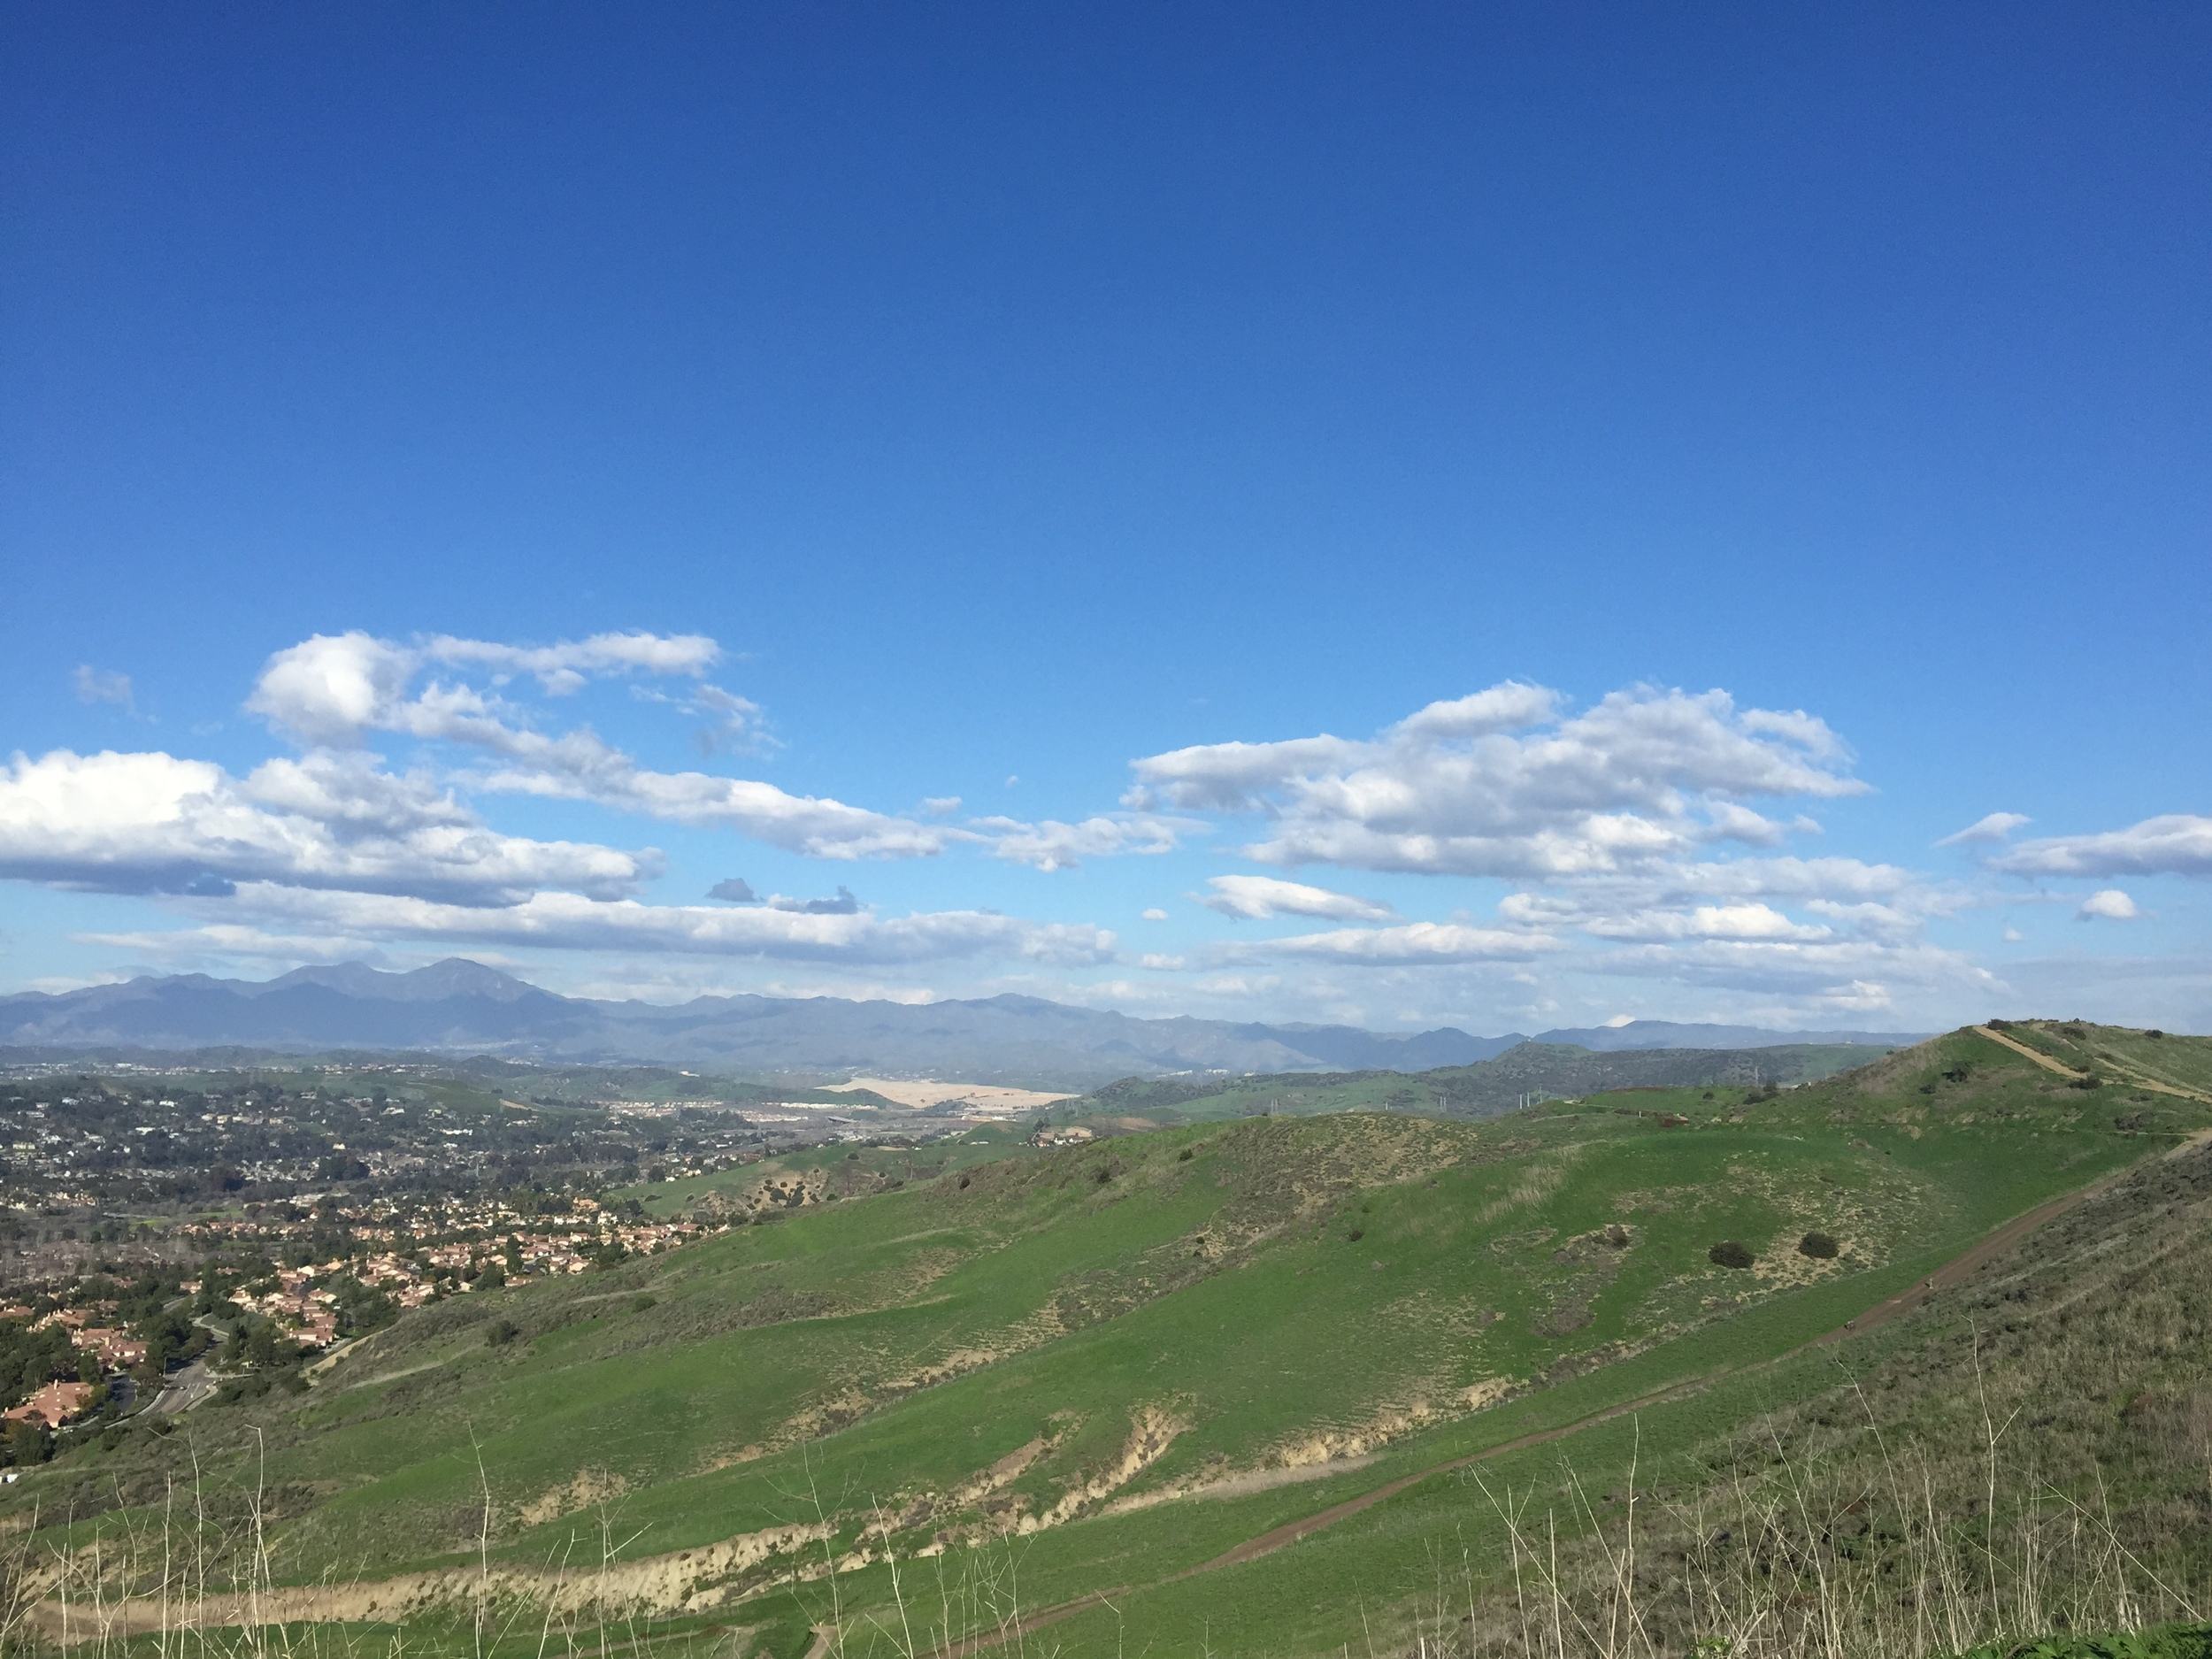 View of San Juan Capistrano and Saddleback Mountain from the Top of the Hills